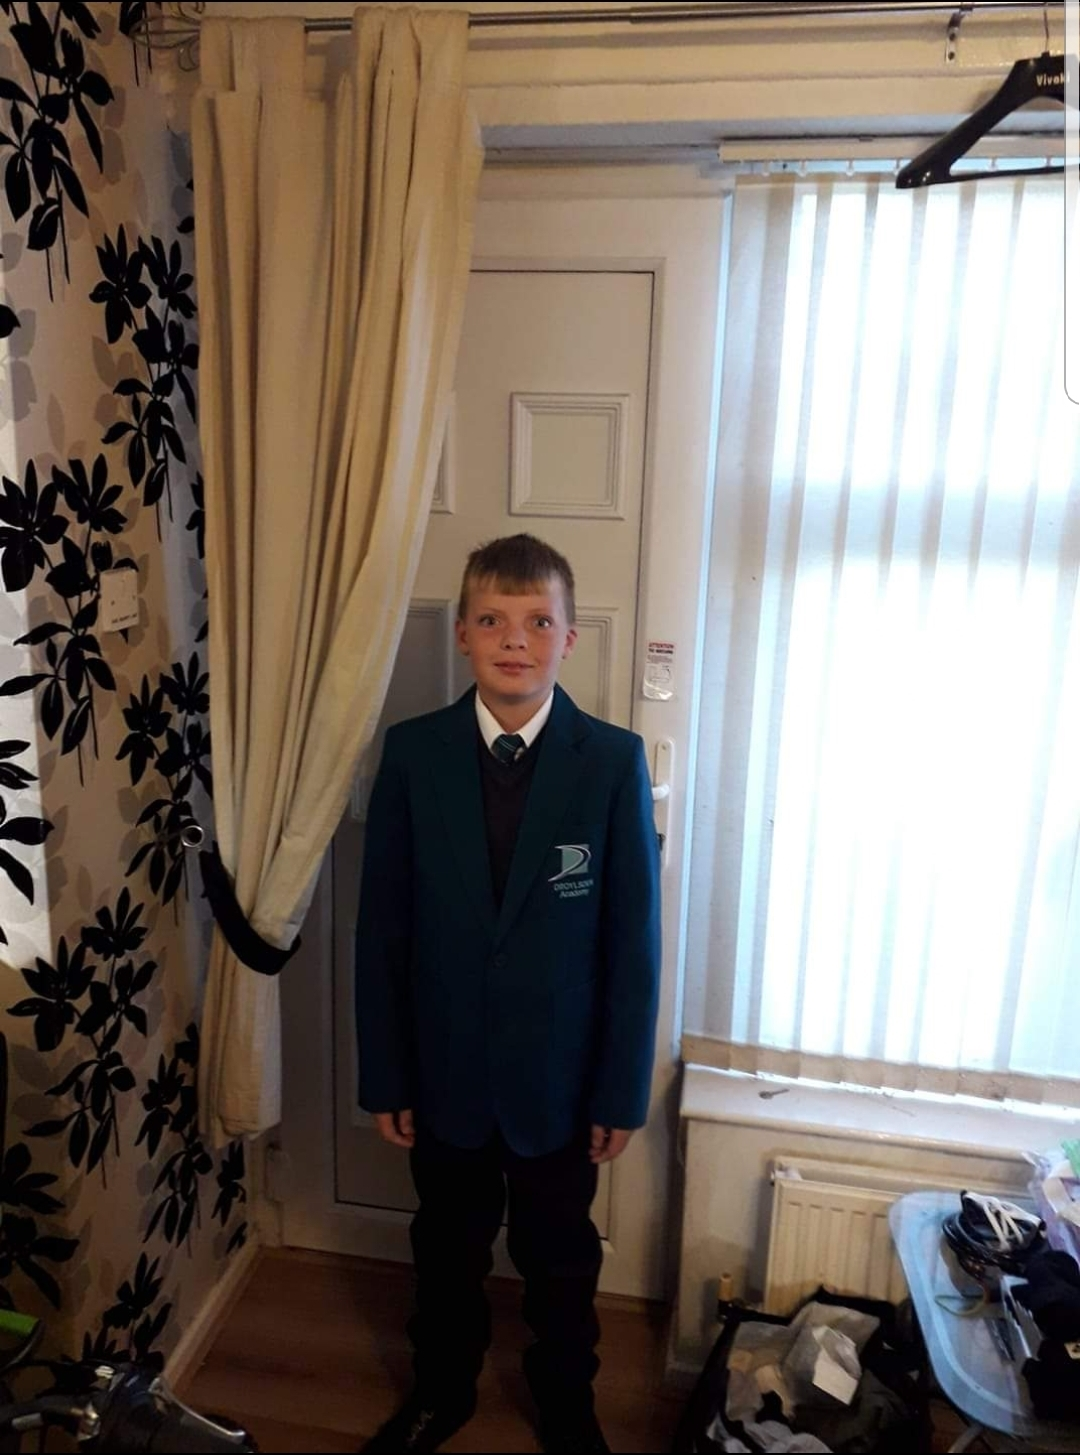 Taylor Schofield on his first day at Droylsden Academy in September last year